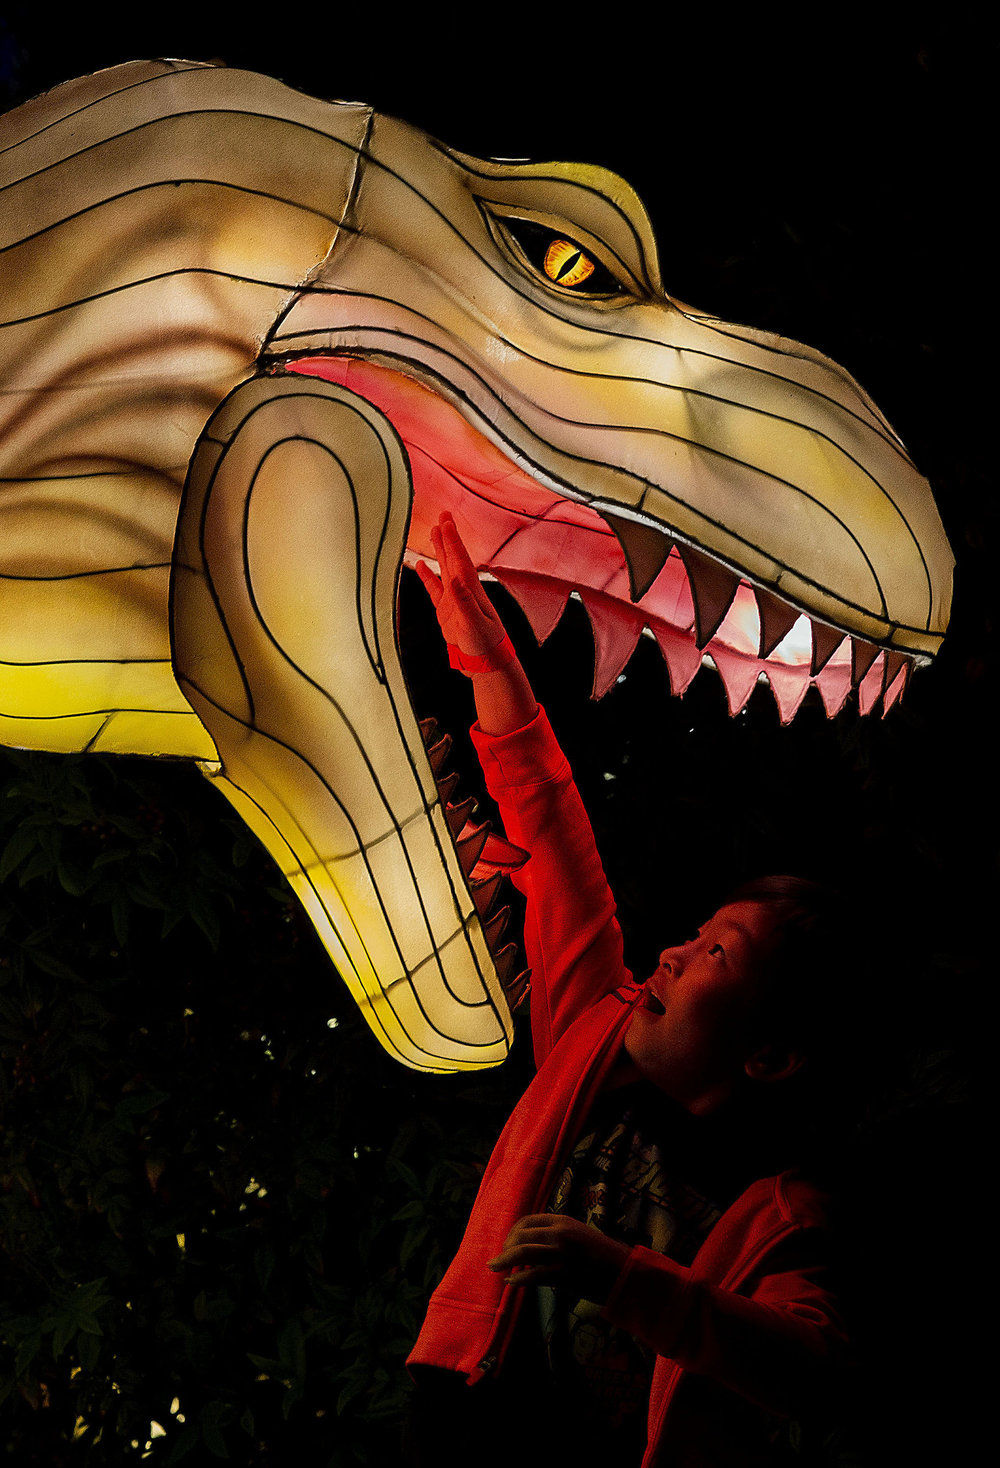 Colton Carrido, 7, of Laguna Hills reaches into the mouth of a dinosaur lantern during the opening of the Hanart Culture Chinese Lantern Festival with 1,000 larger-than life outdoor lantern displays, towering up to 23 feet tall at Pomona Fairplex in Pomona on Thursday, November 15, 2018.